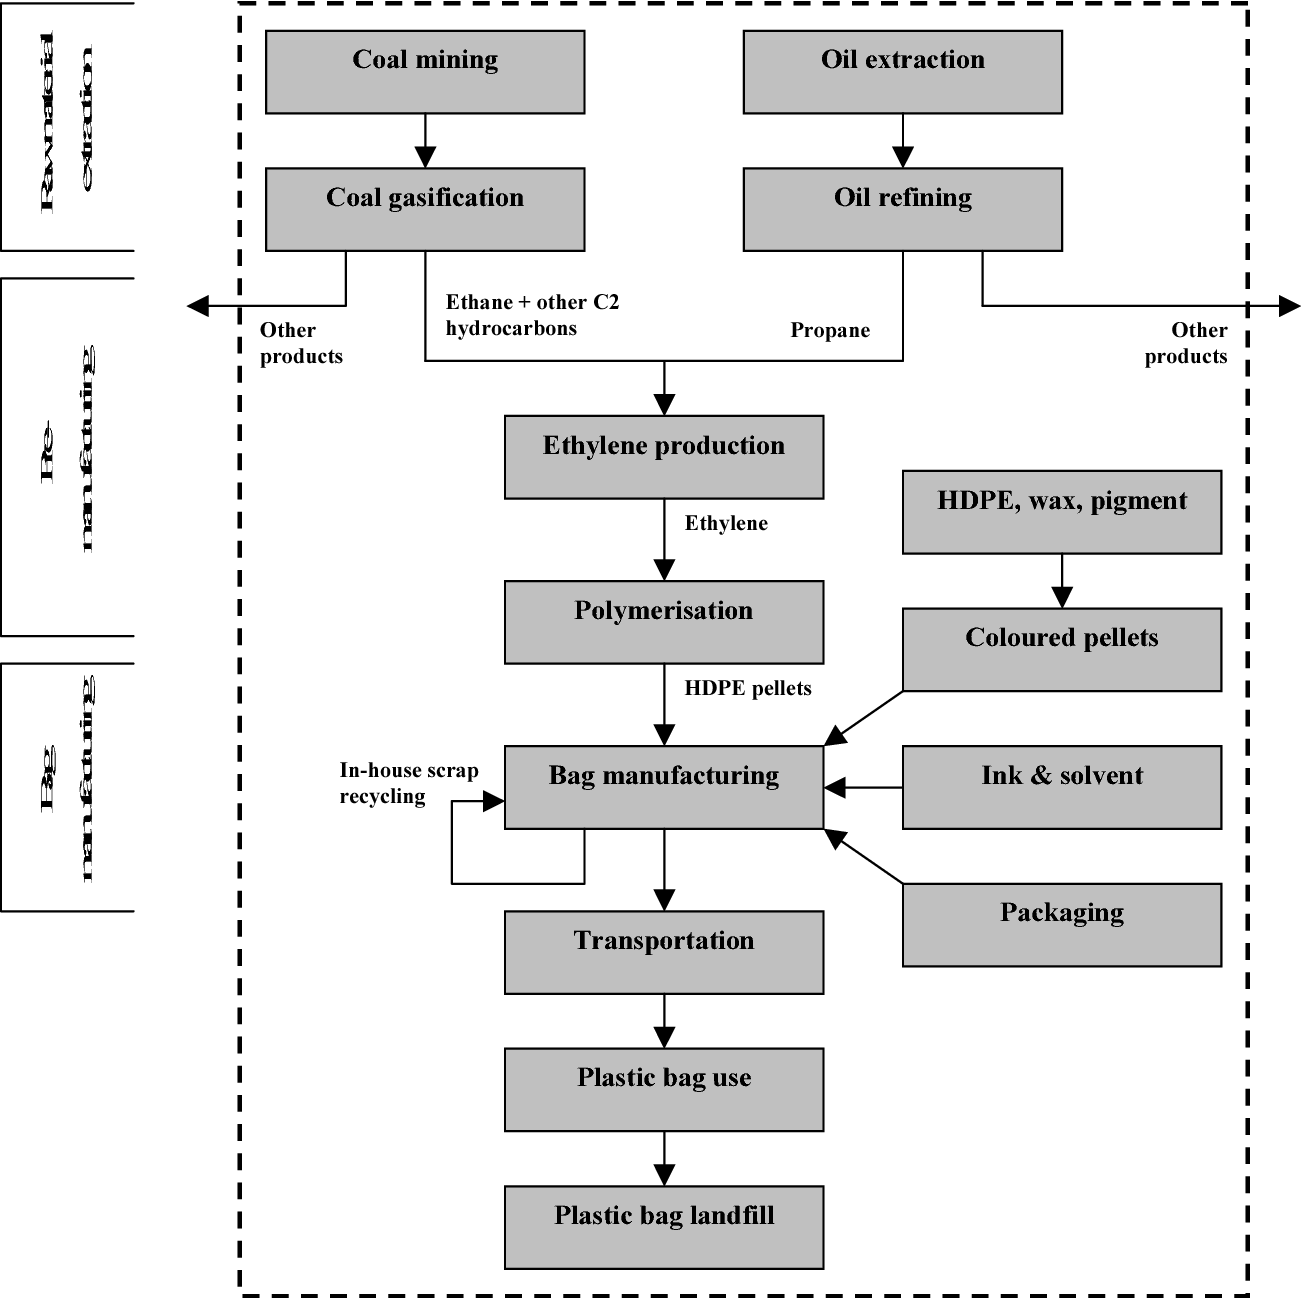 hight resolution of figure 3 flow diagram of the investigated plastic bag life cycle system